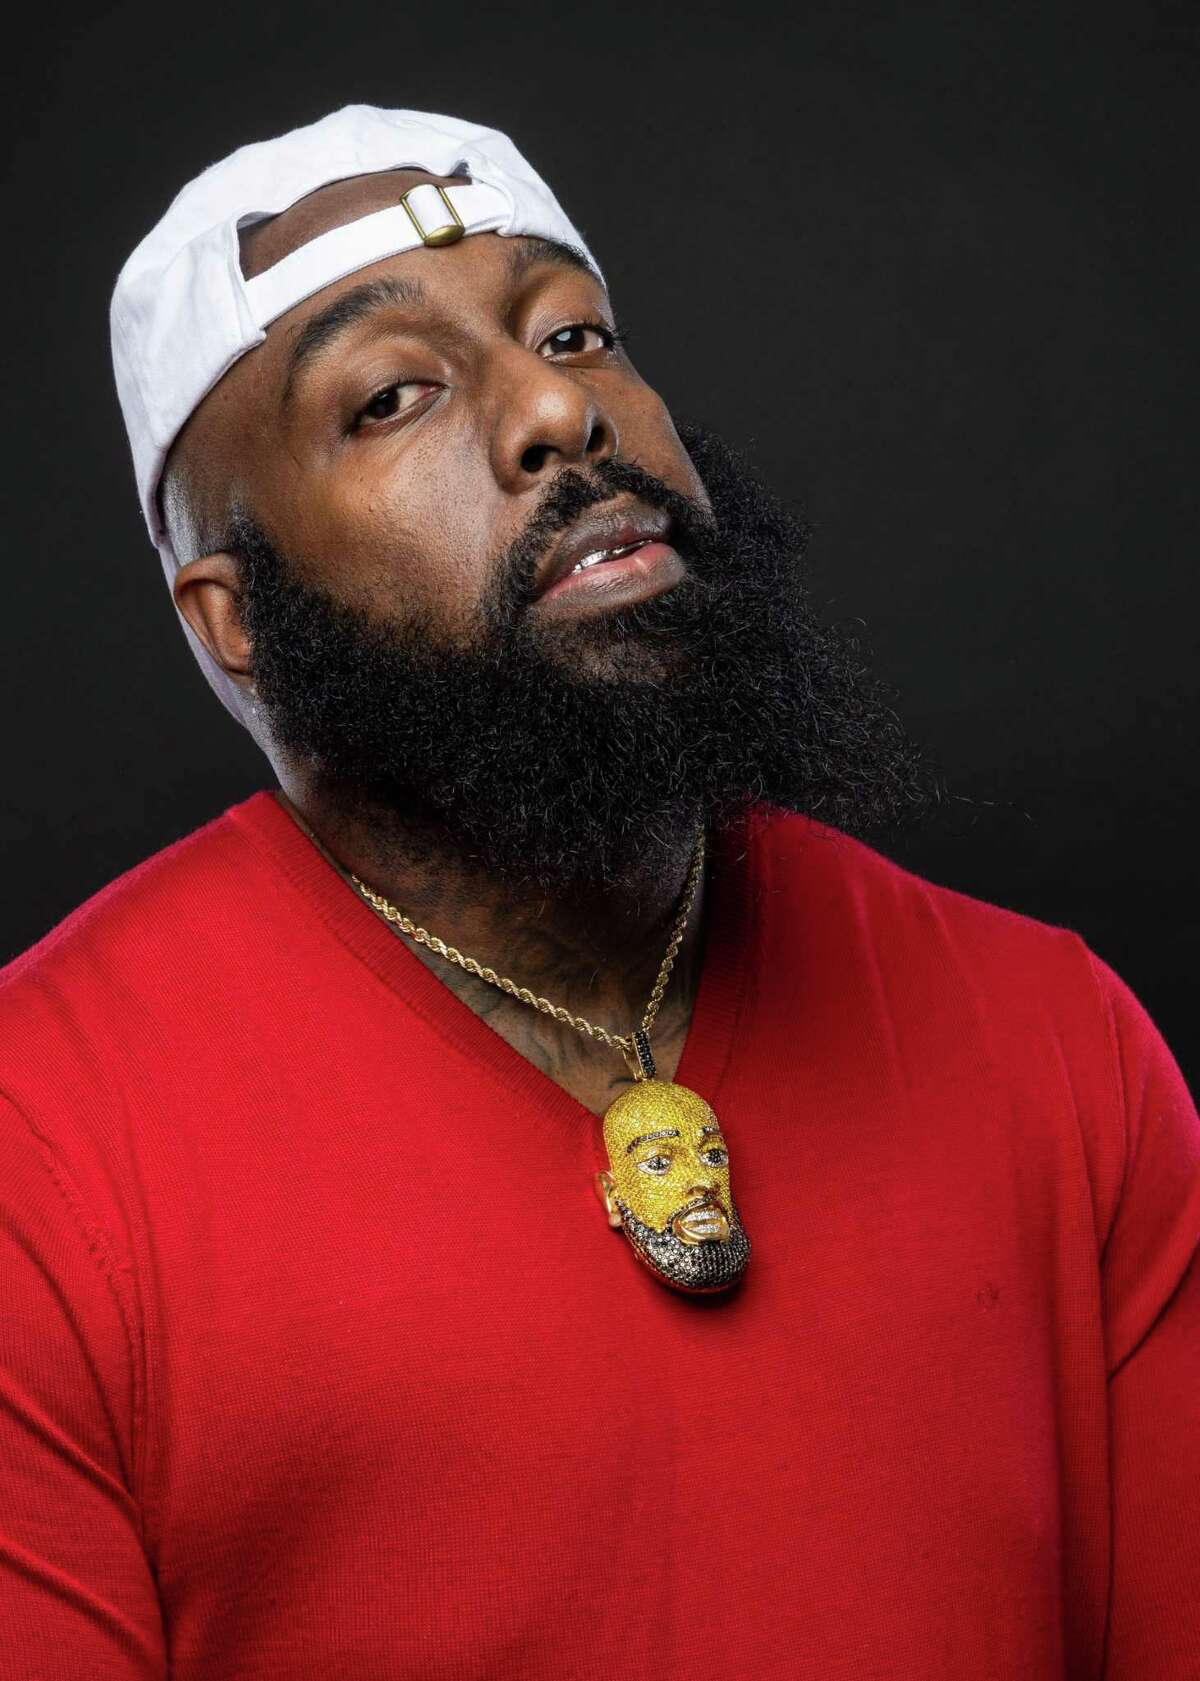 Fearless and compassionate in the face of any disaster striking Houston, Trae the Truth stands up to the challenge when his home or his neighbors are threatened. When Hurricane Laura decimated some areas around Lousiana, Trae mobilized the